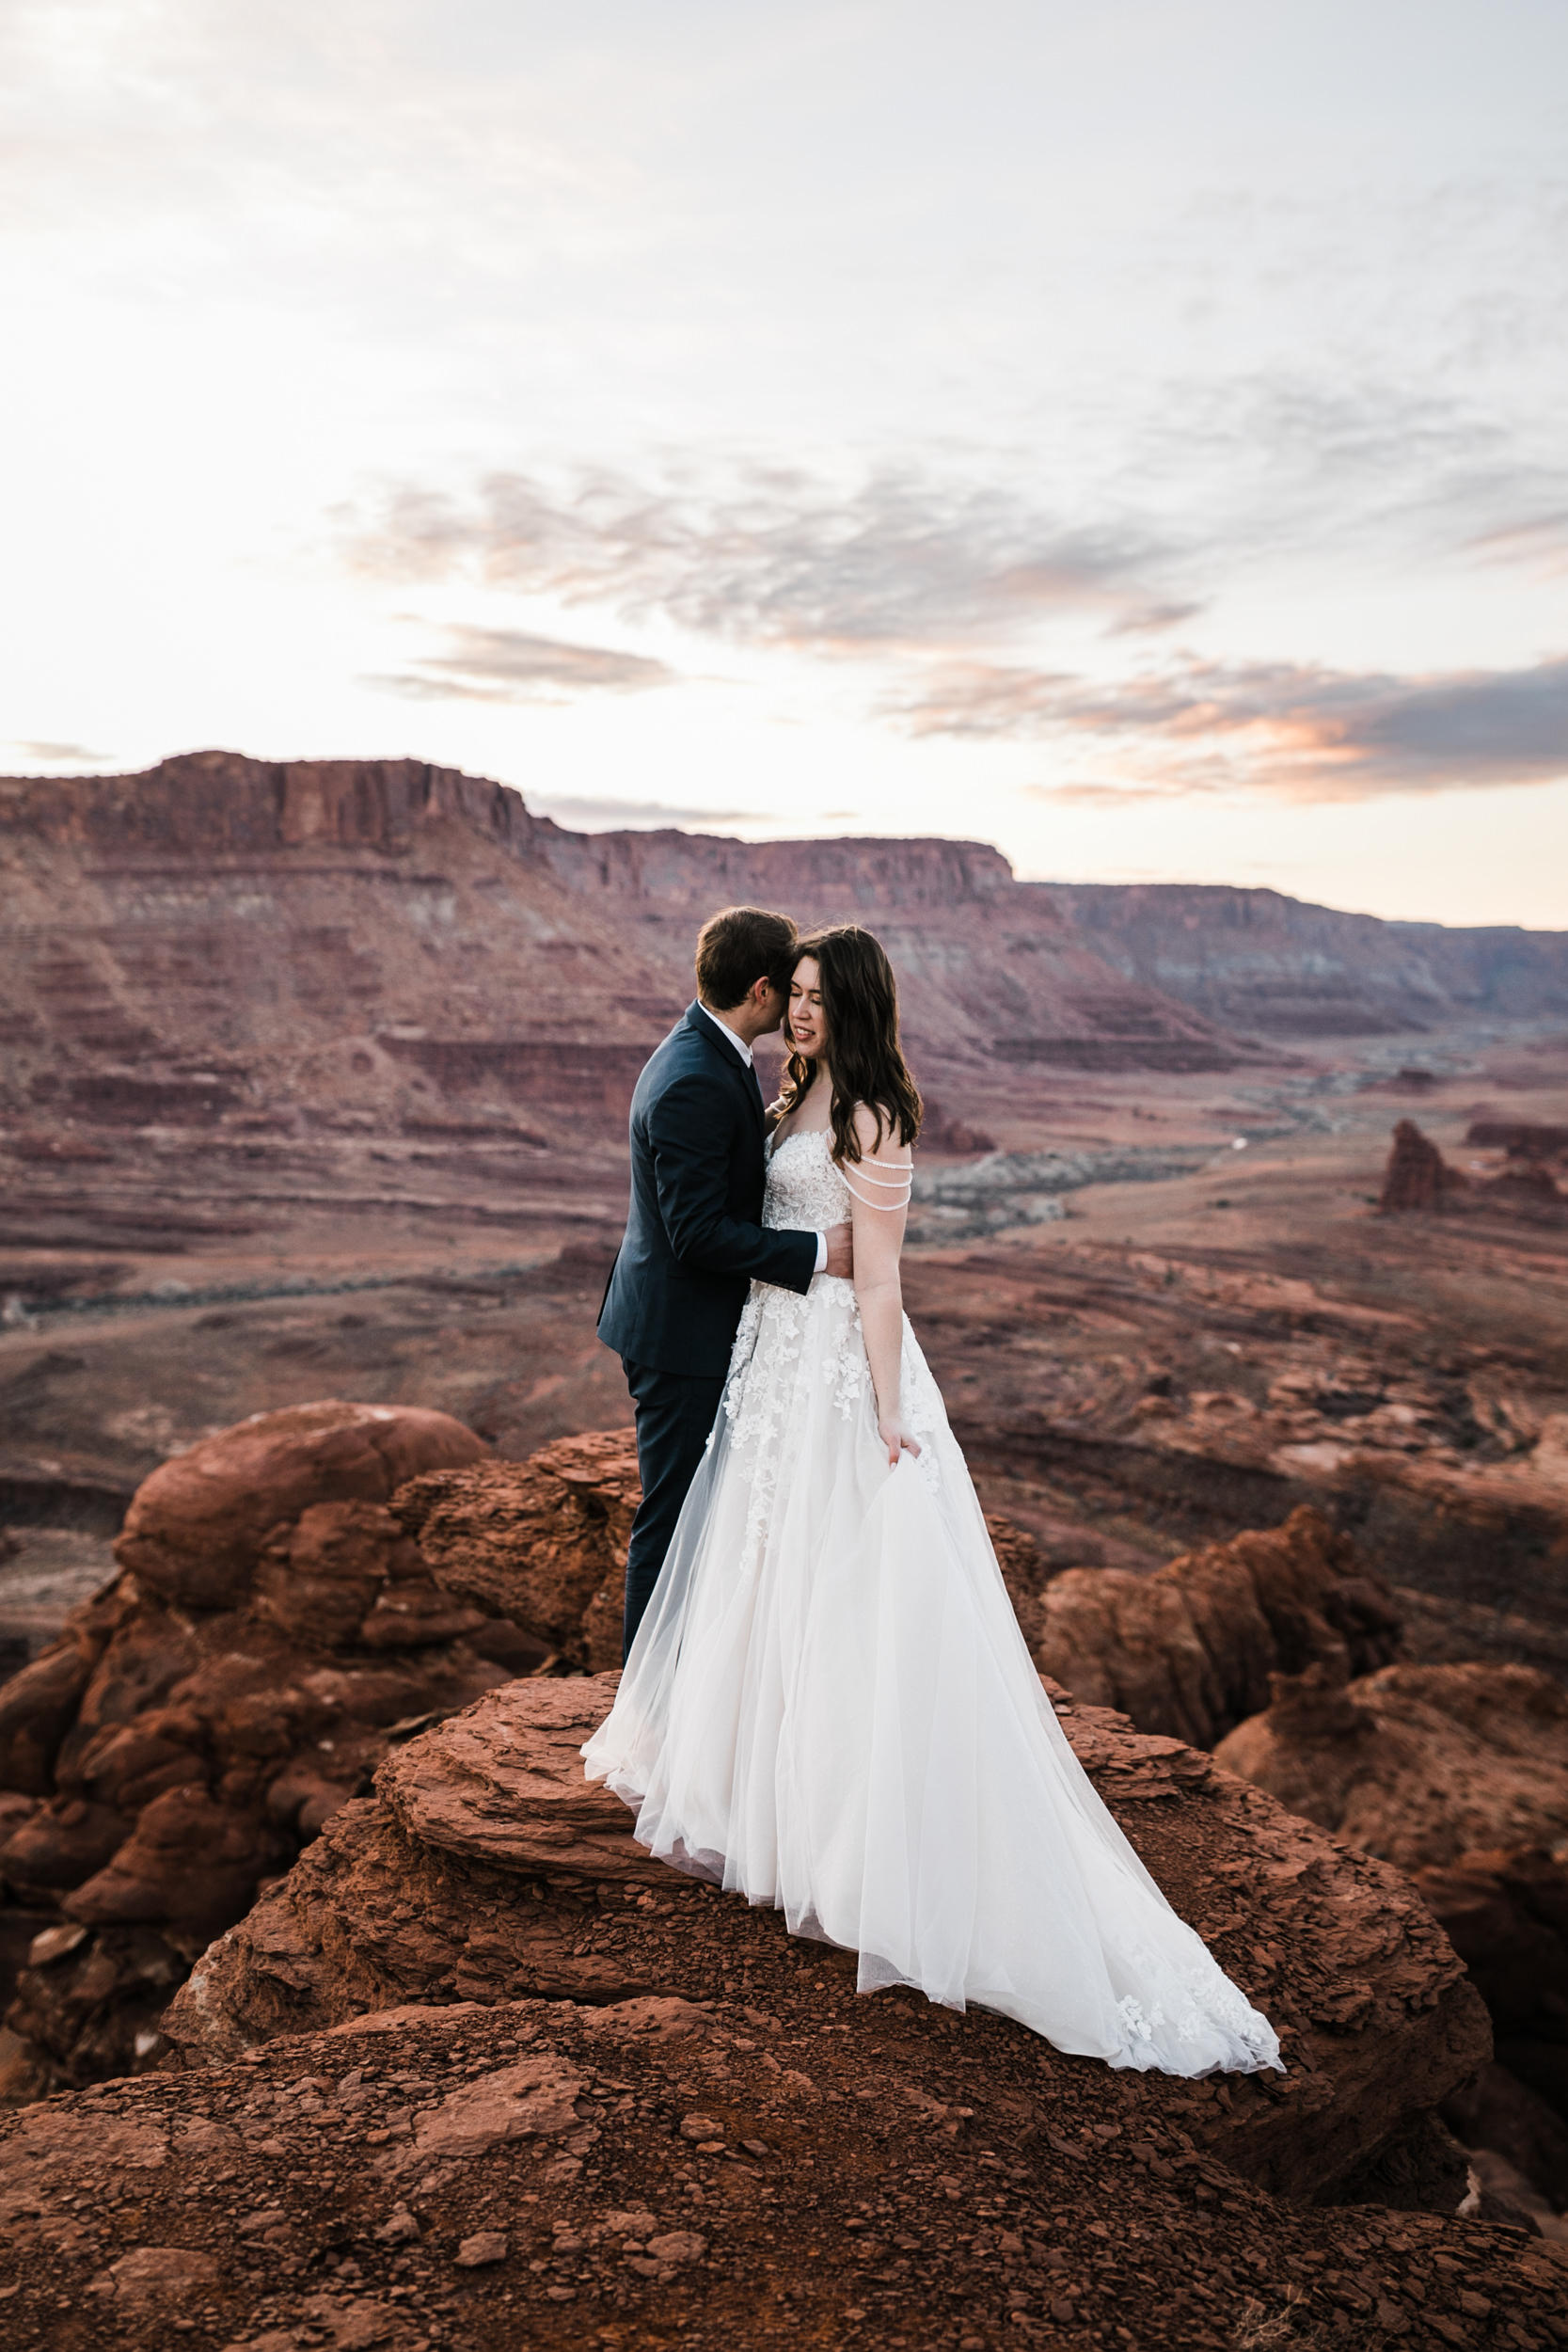 I love our adventurous couples coming to get married in Moab! One of the best places in the world for couples to elope, in my opinion.